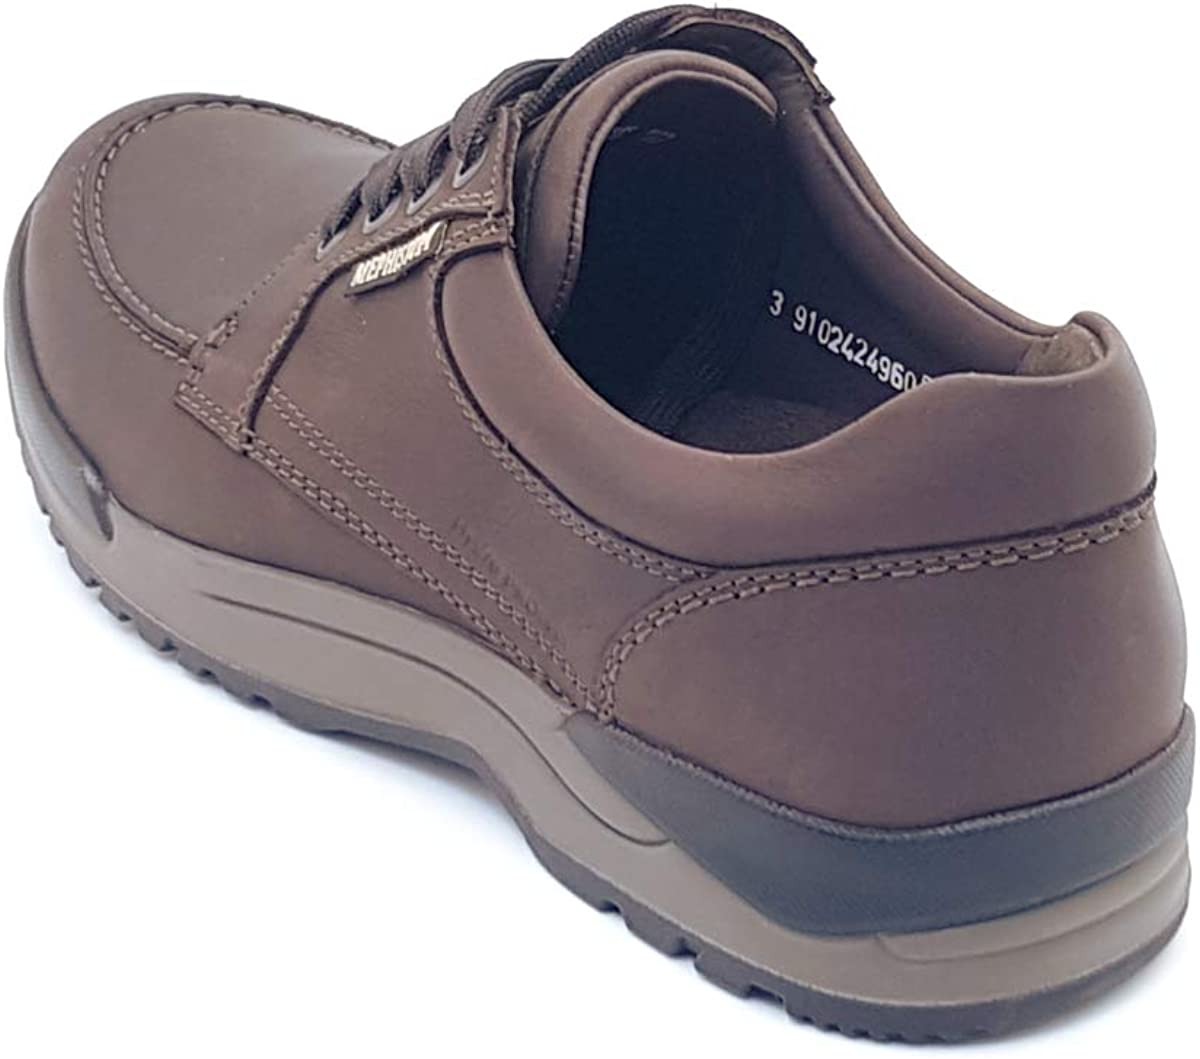 MEPHISTO CHARLES hommes Chaussures /à lacets